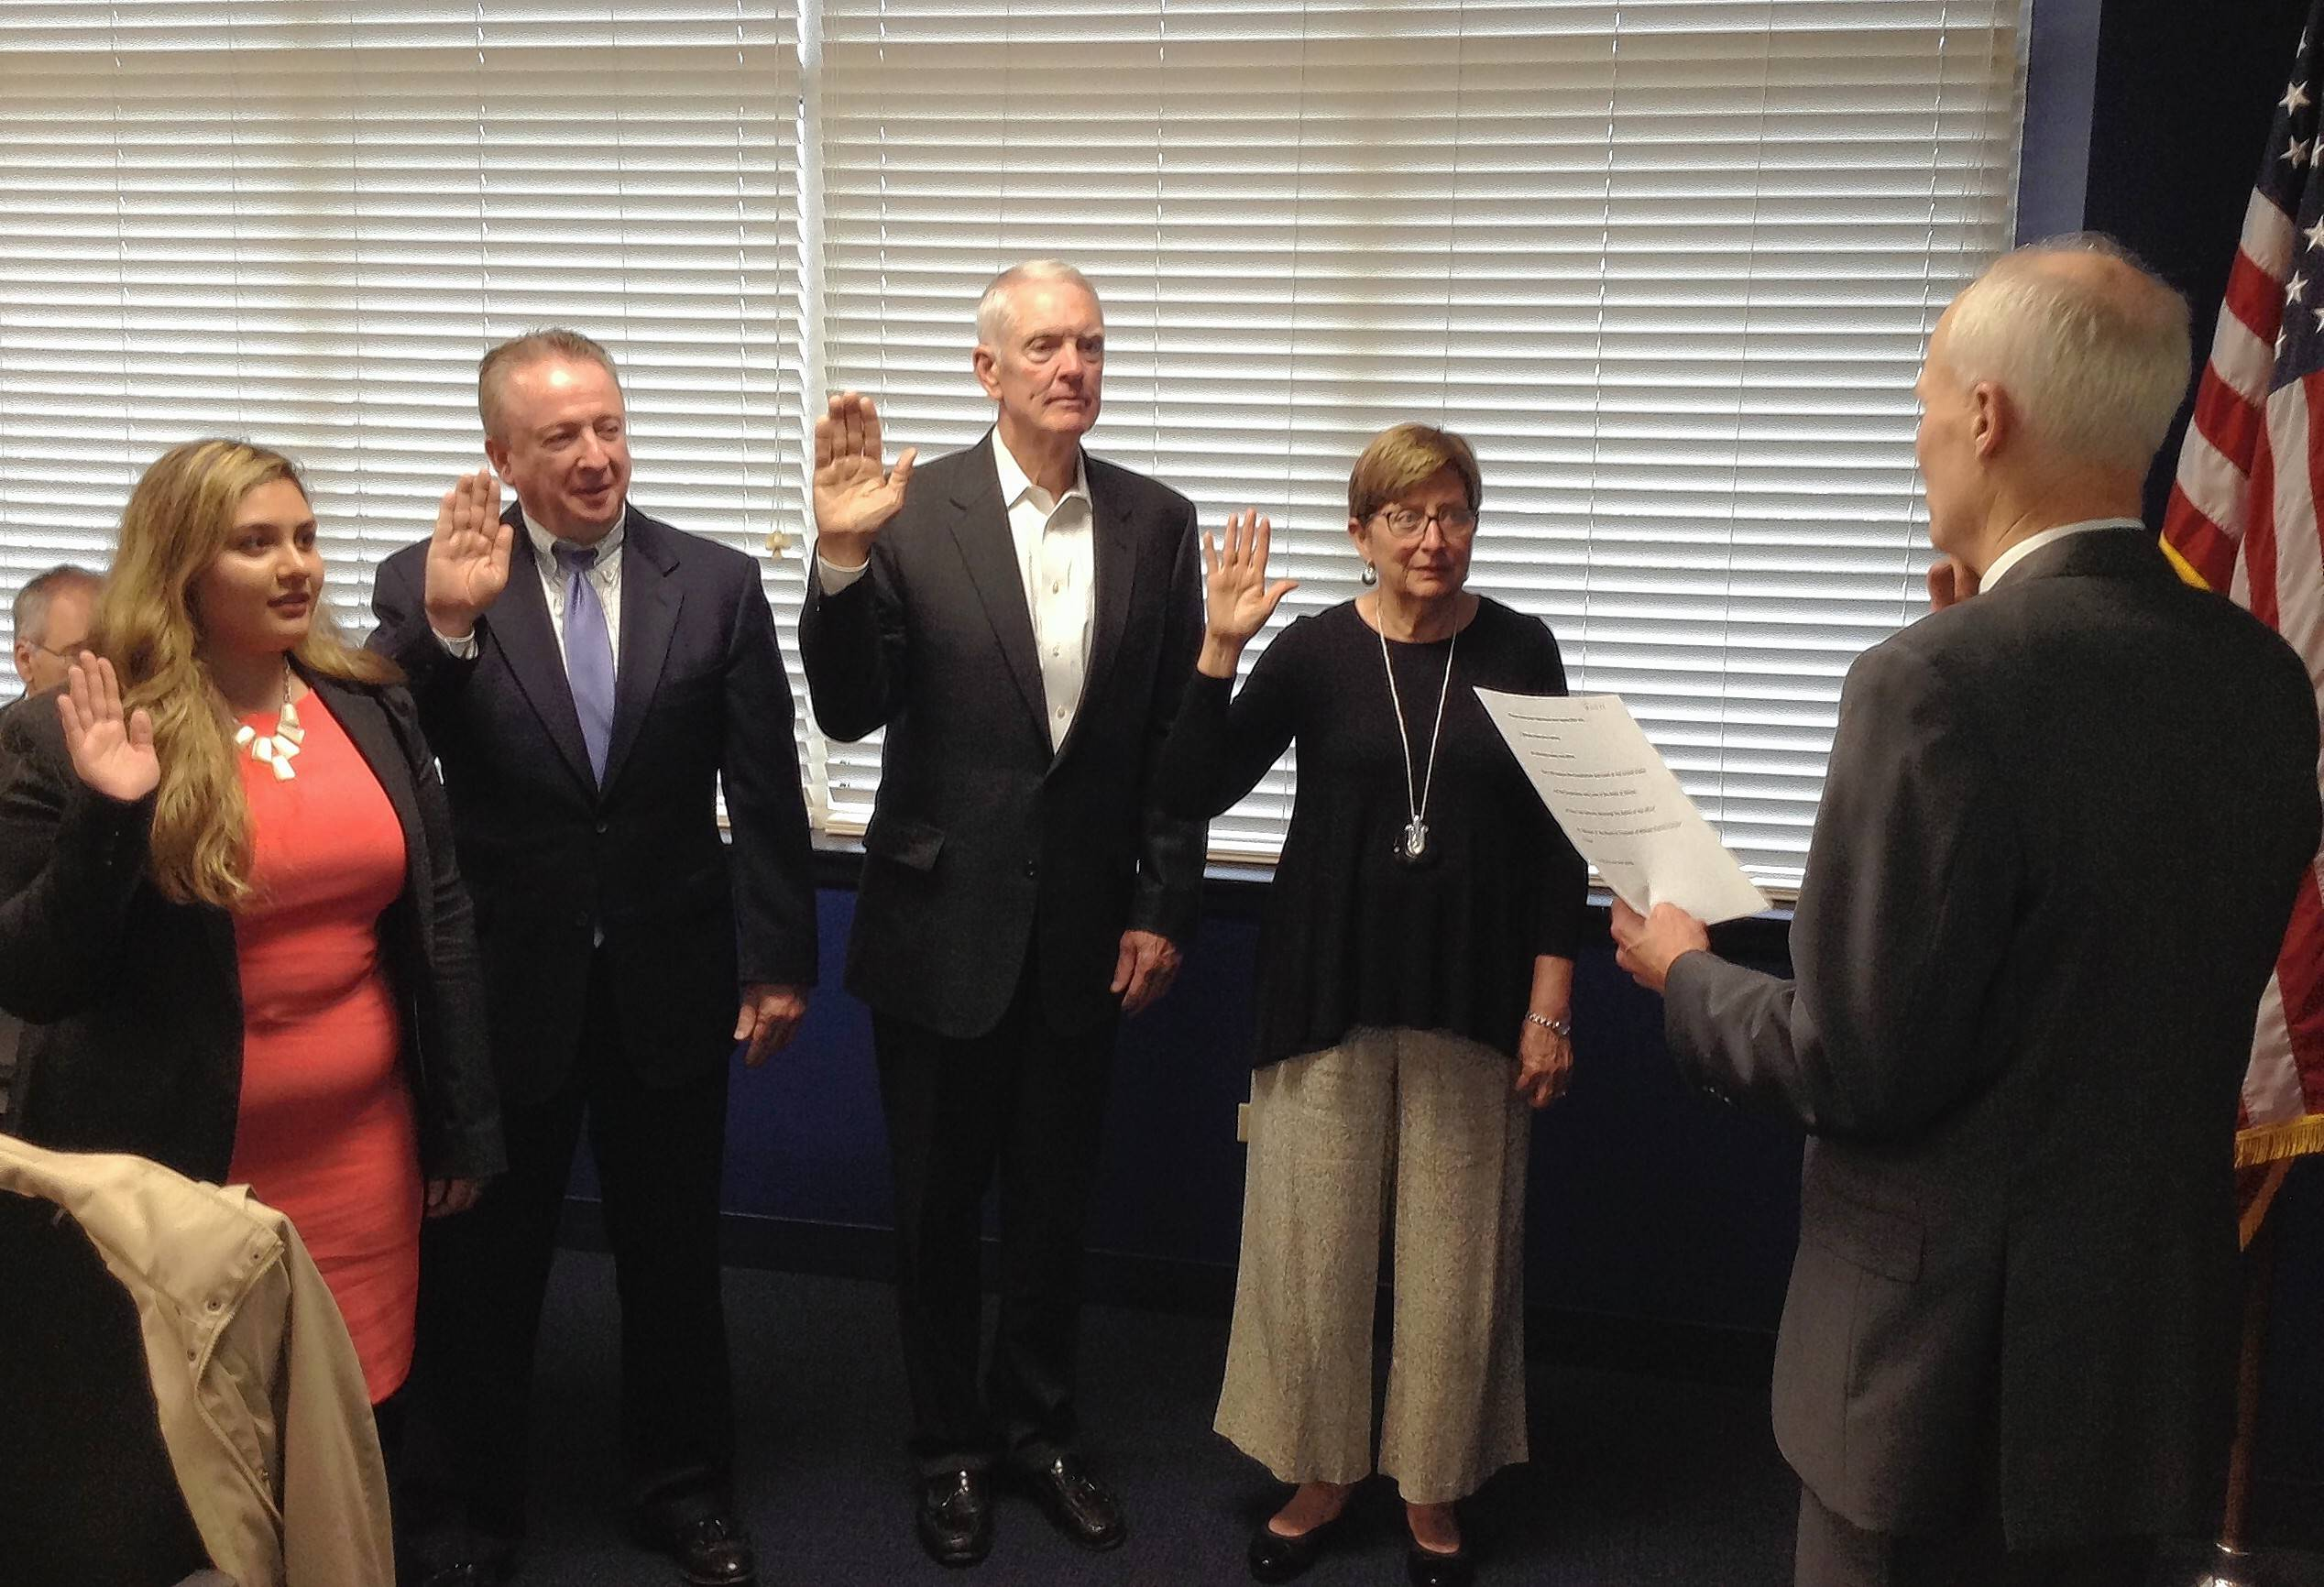 Harper College board members sworn in Wednesday include Student Trustee Niki Safakas, from left, and Trustees Walt Mundt, Herb Johnson and Pat Stack. They were given the oath of office by college attorney Phil Gerner.